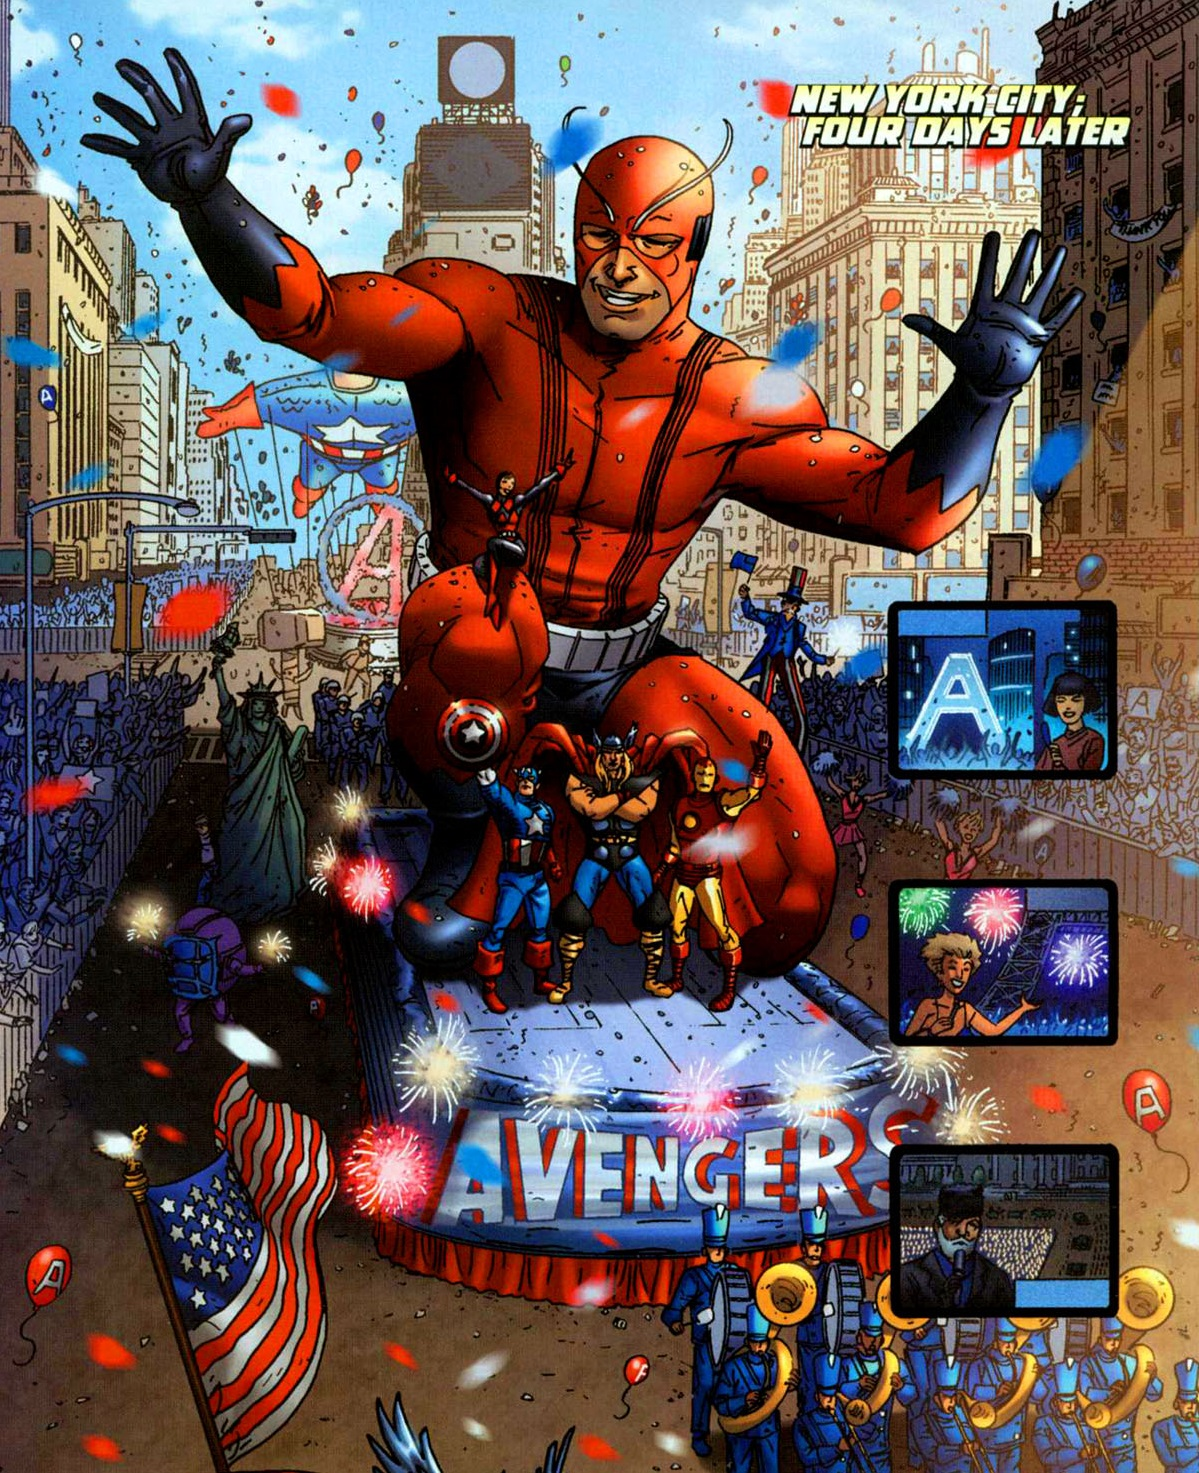 Avengers (Earth-616) parade thrown in the Avengers honor following the defeat of Kang from Avengers Earth's Mightiest Heroes Vol 1 4.jpg